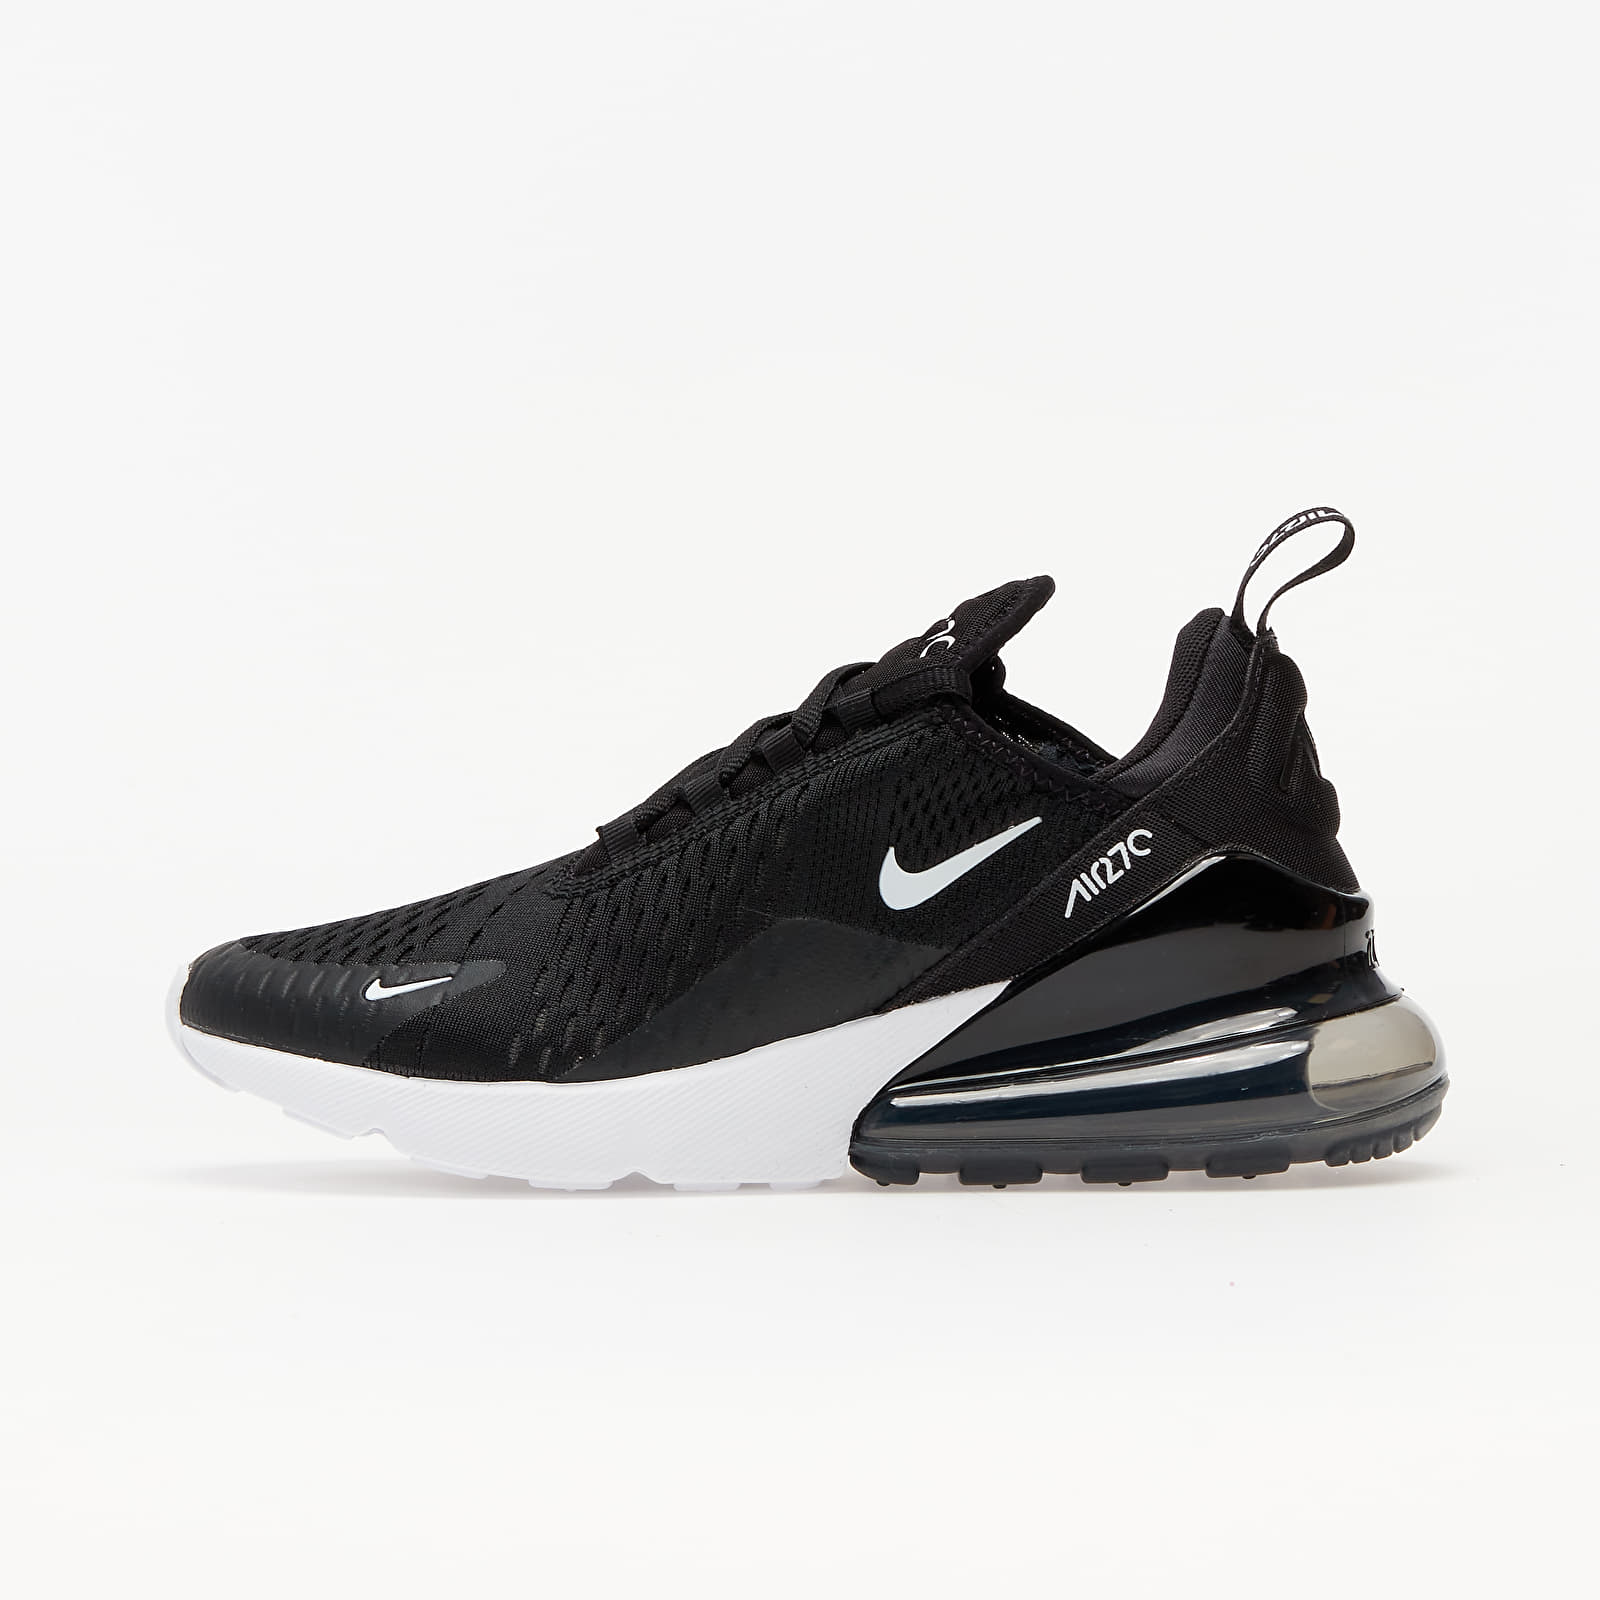 Nike W Air Max 270 Black/ Anthracite-White EUR 35.5